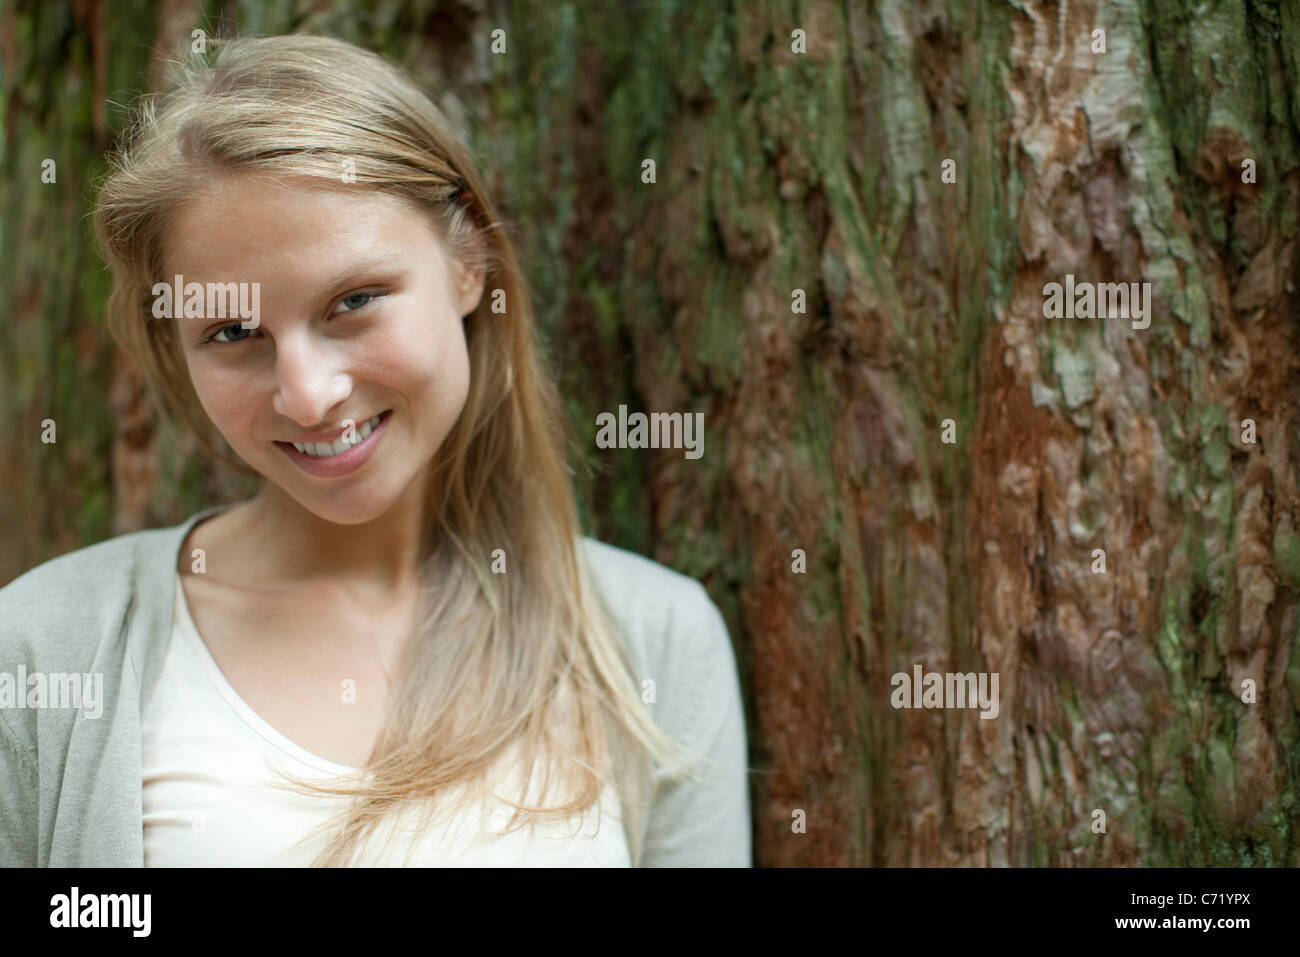 Young woman leaning against tree trunk, portrait - Stock Image